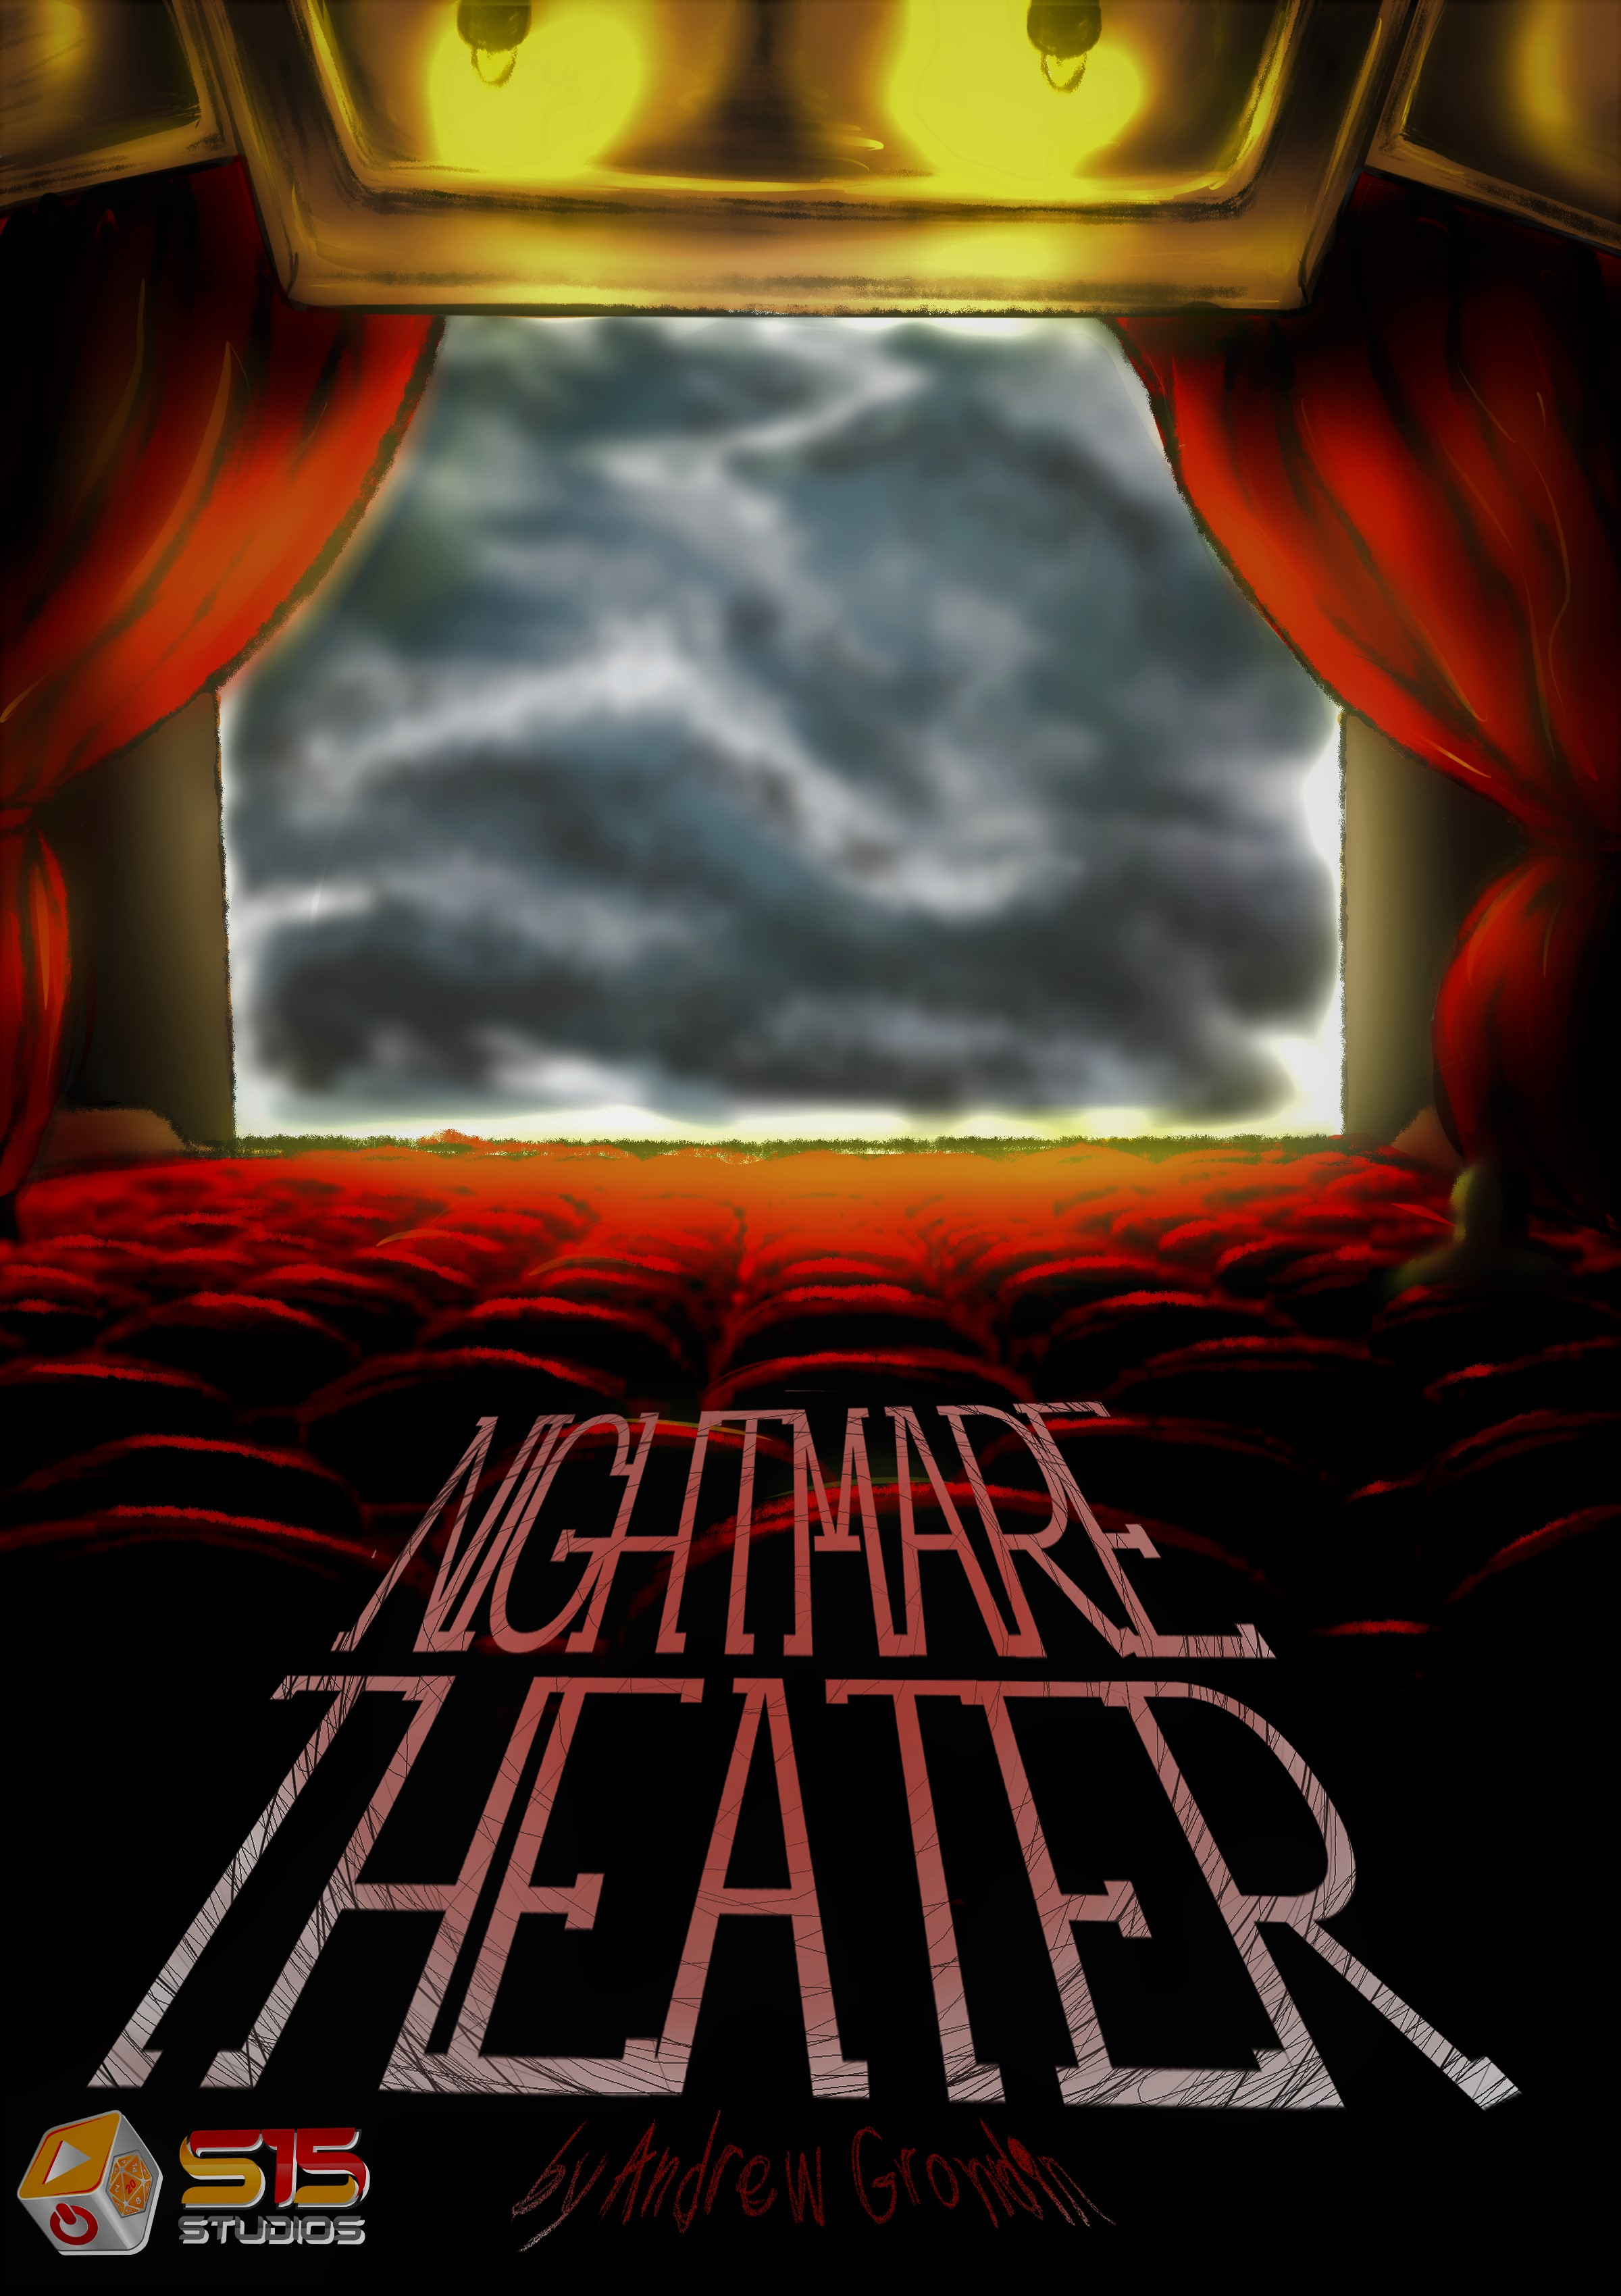 Nightmare Theater Cover.jpg